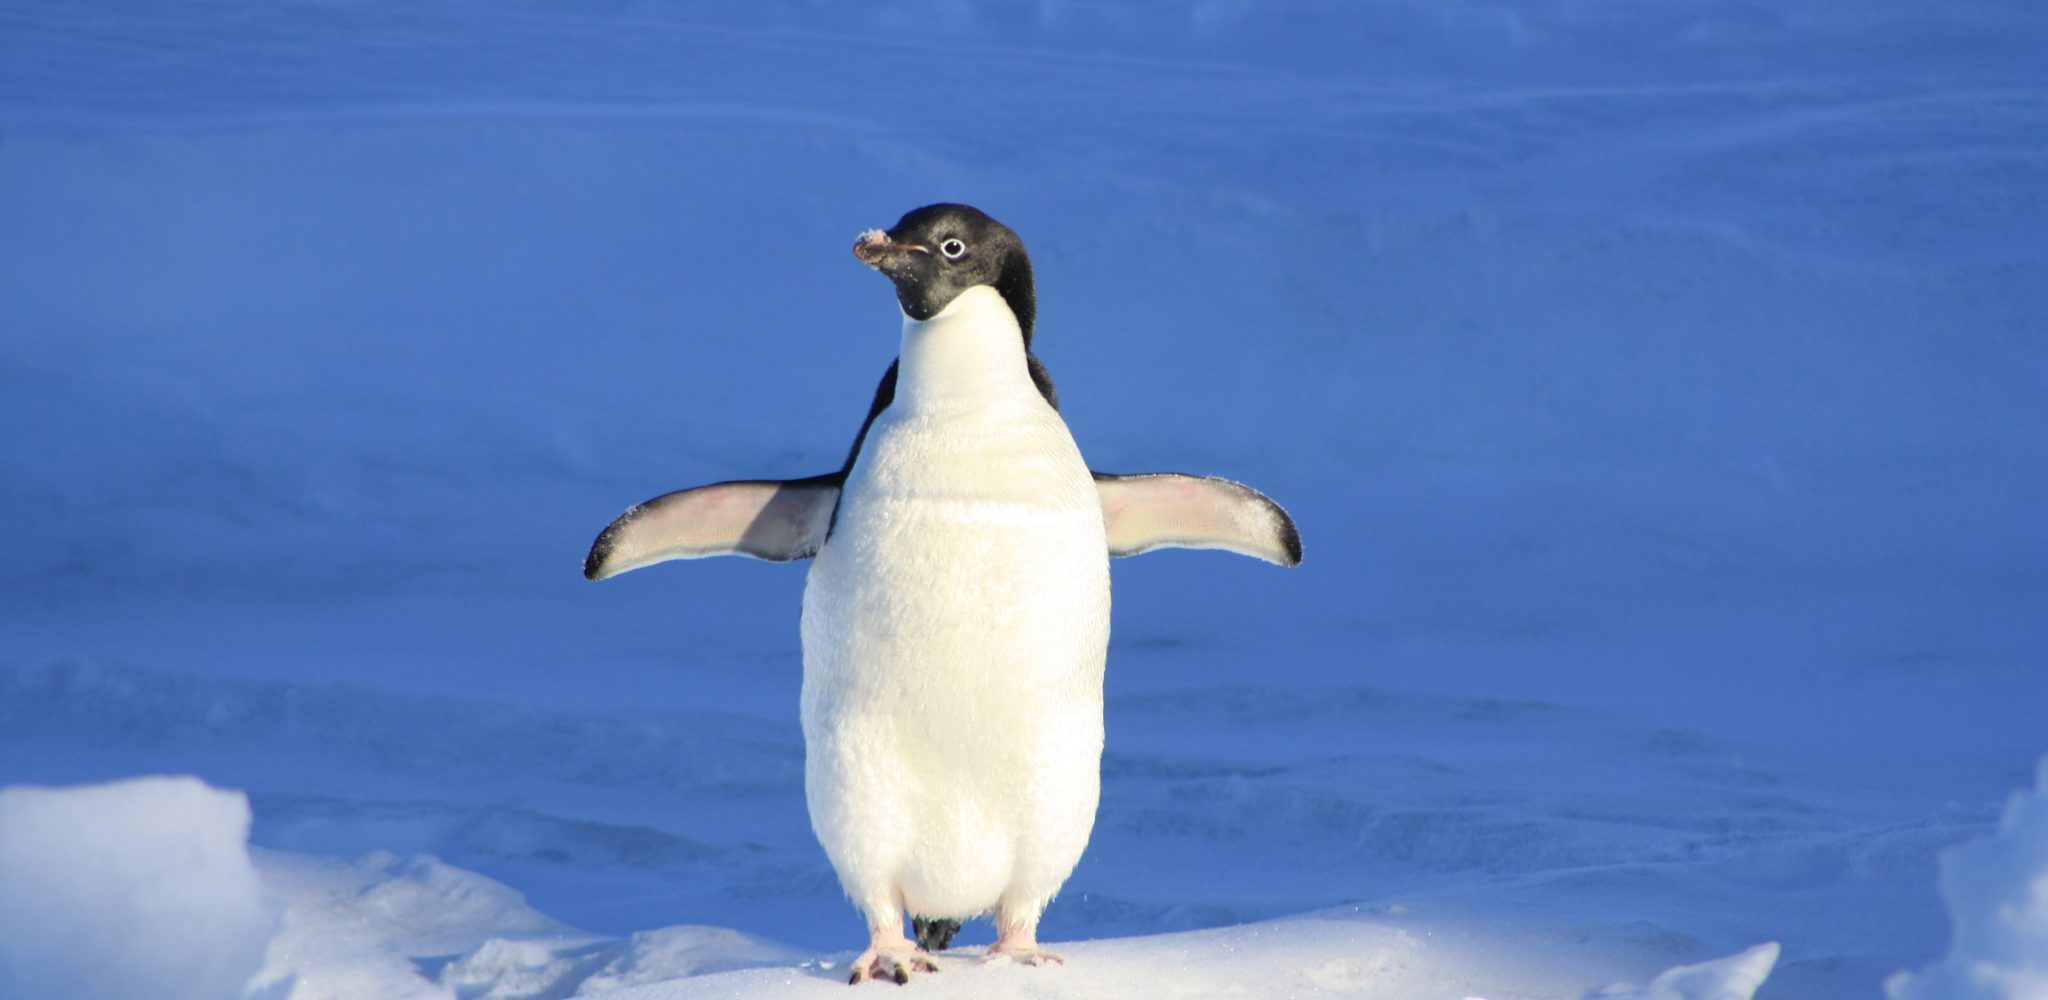 penguin-funny-blue-water-86405